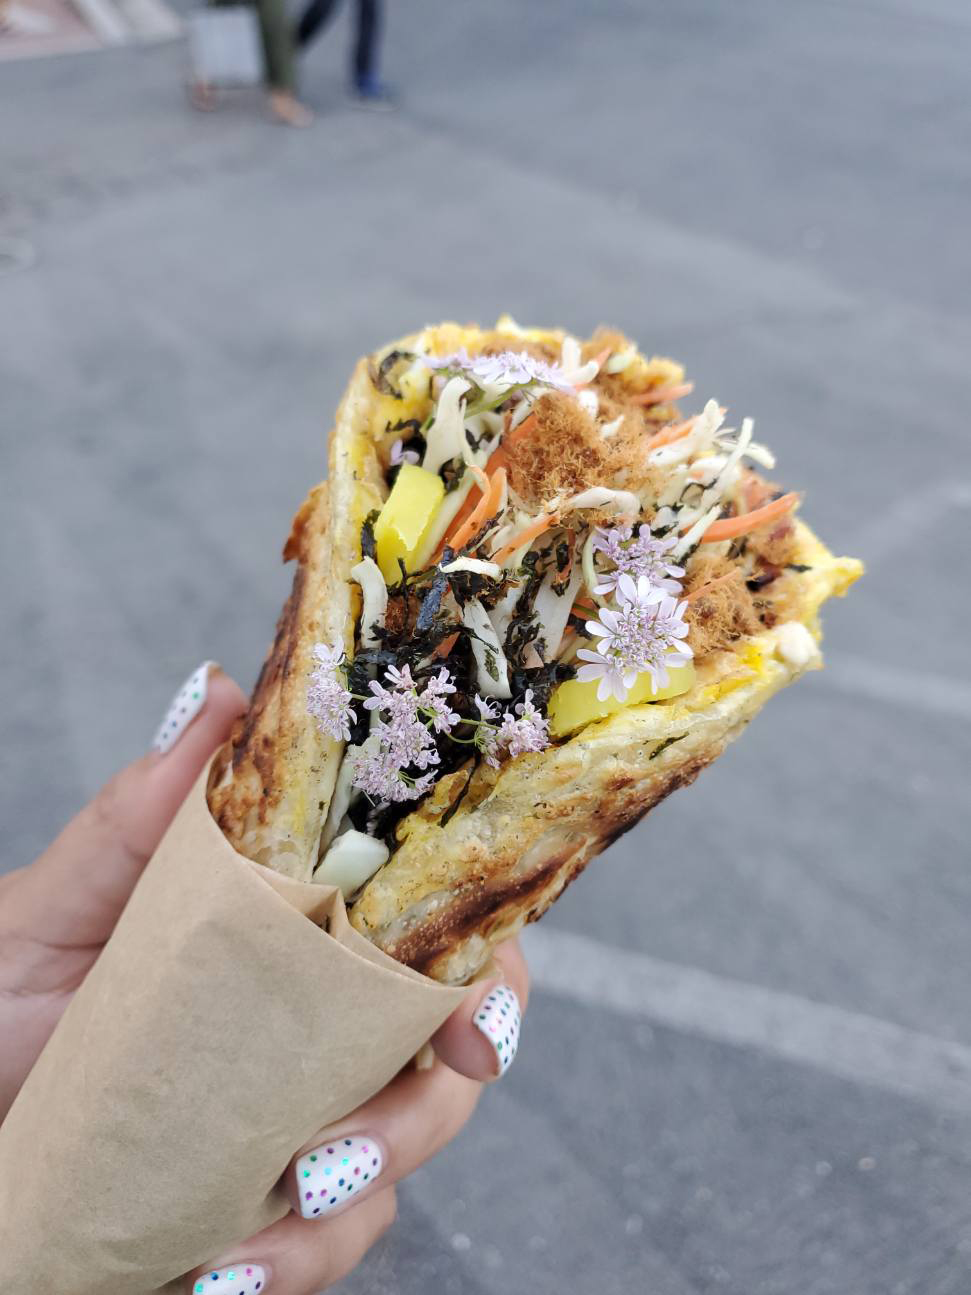 """A view of the """"Taiwan taco,"""" a scallion pancake stuffed with eggs, slaw, and edible flowers."""